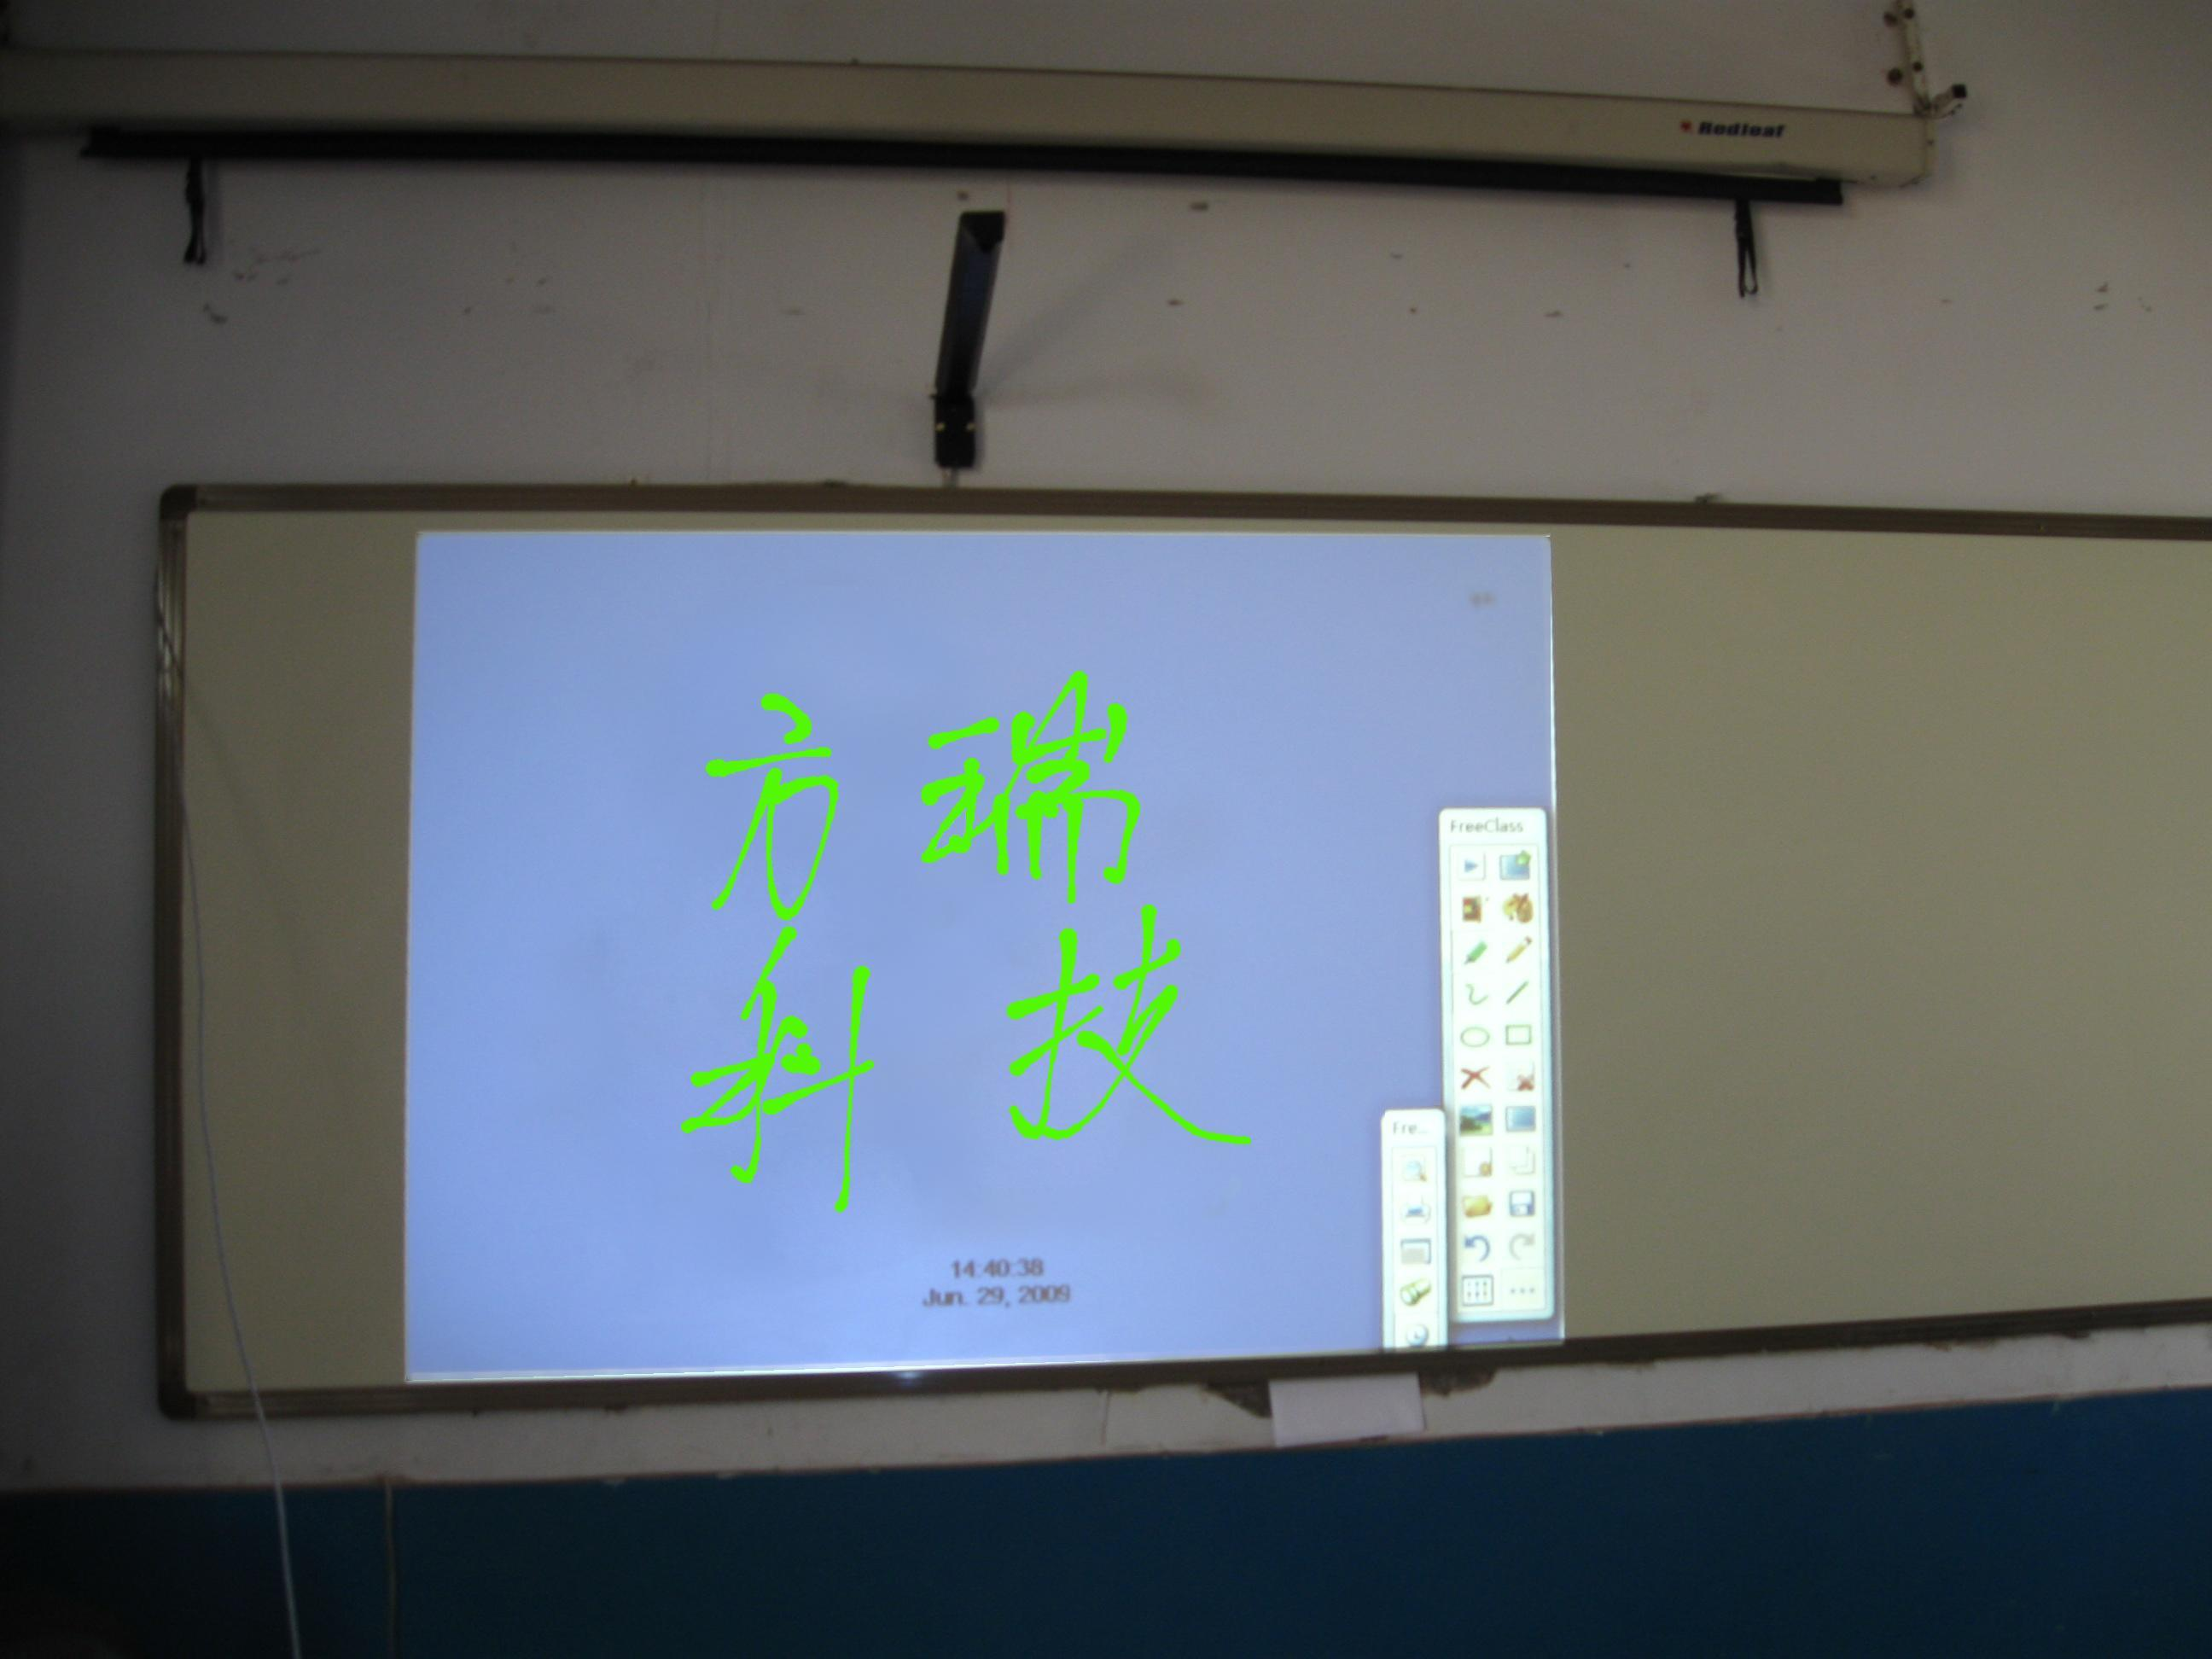 A70-Acromeet Interactive Whiteboard (Front Mount) pictures & photos